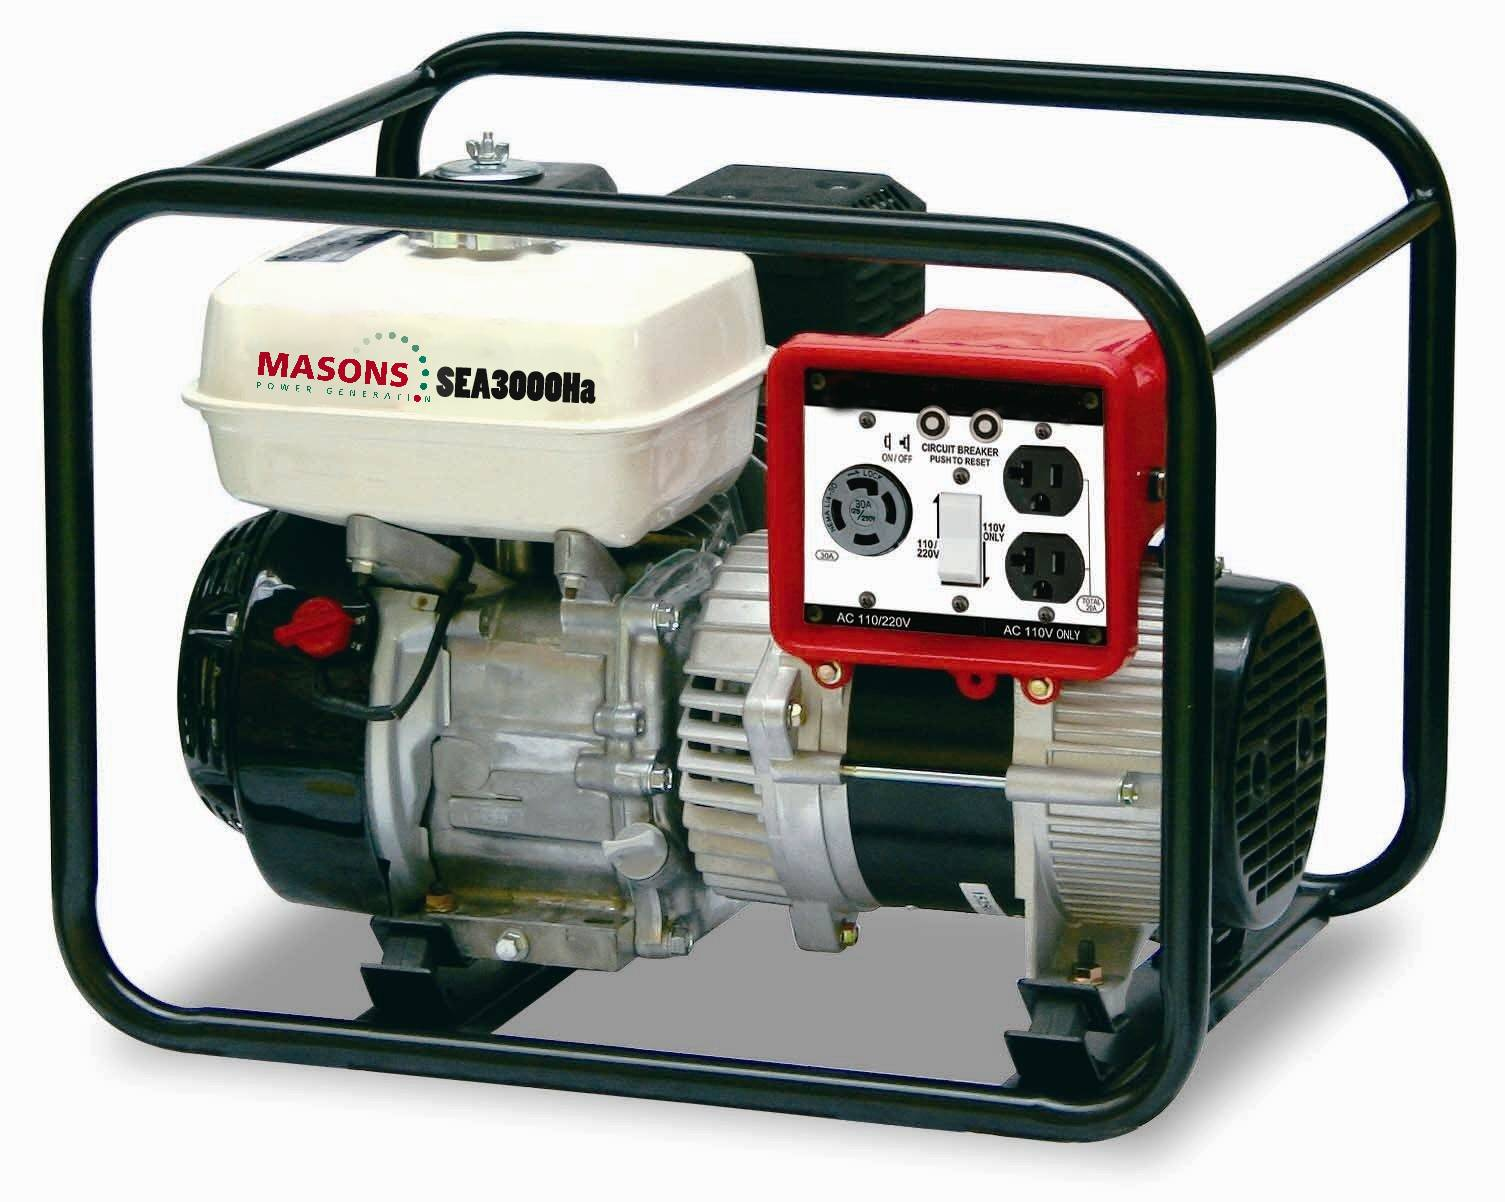 Masons CEapproval Portable gasoline generators with Honda Engine 2.2KVA /2.0KVA